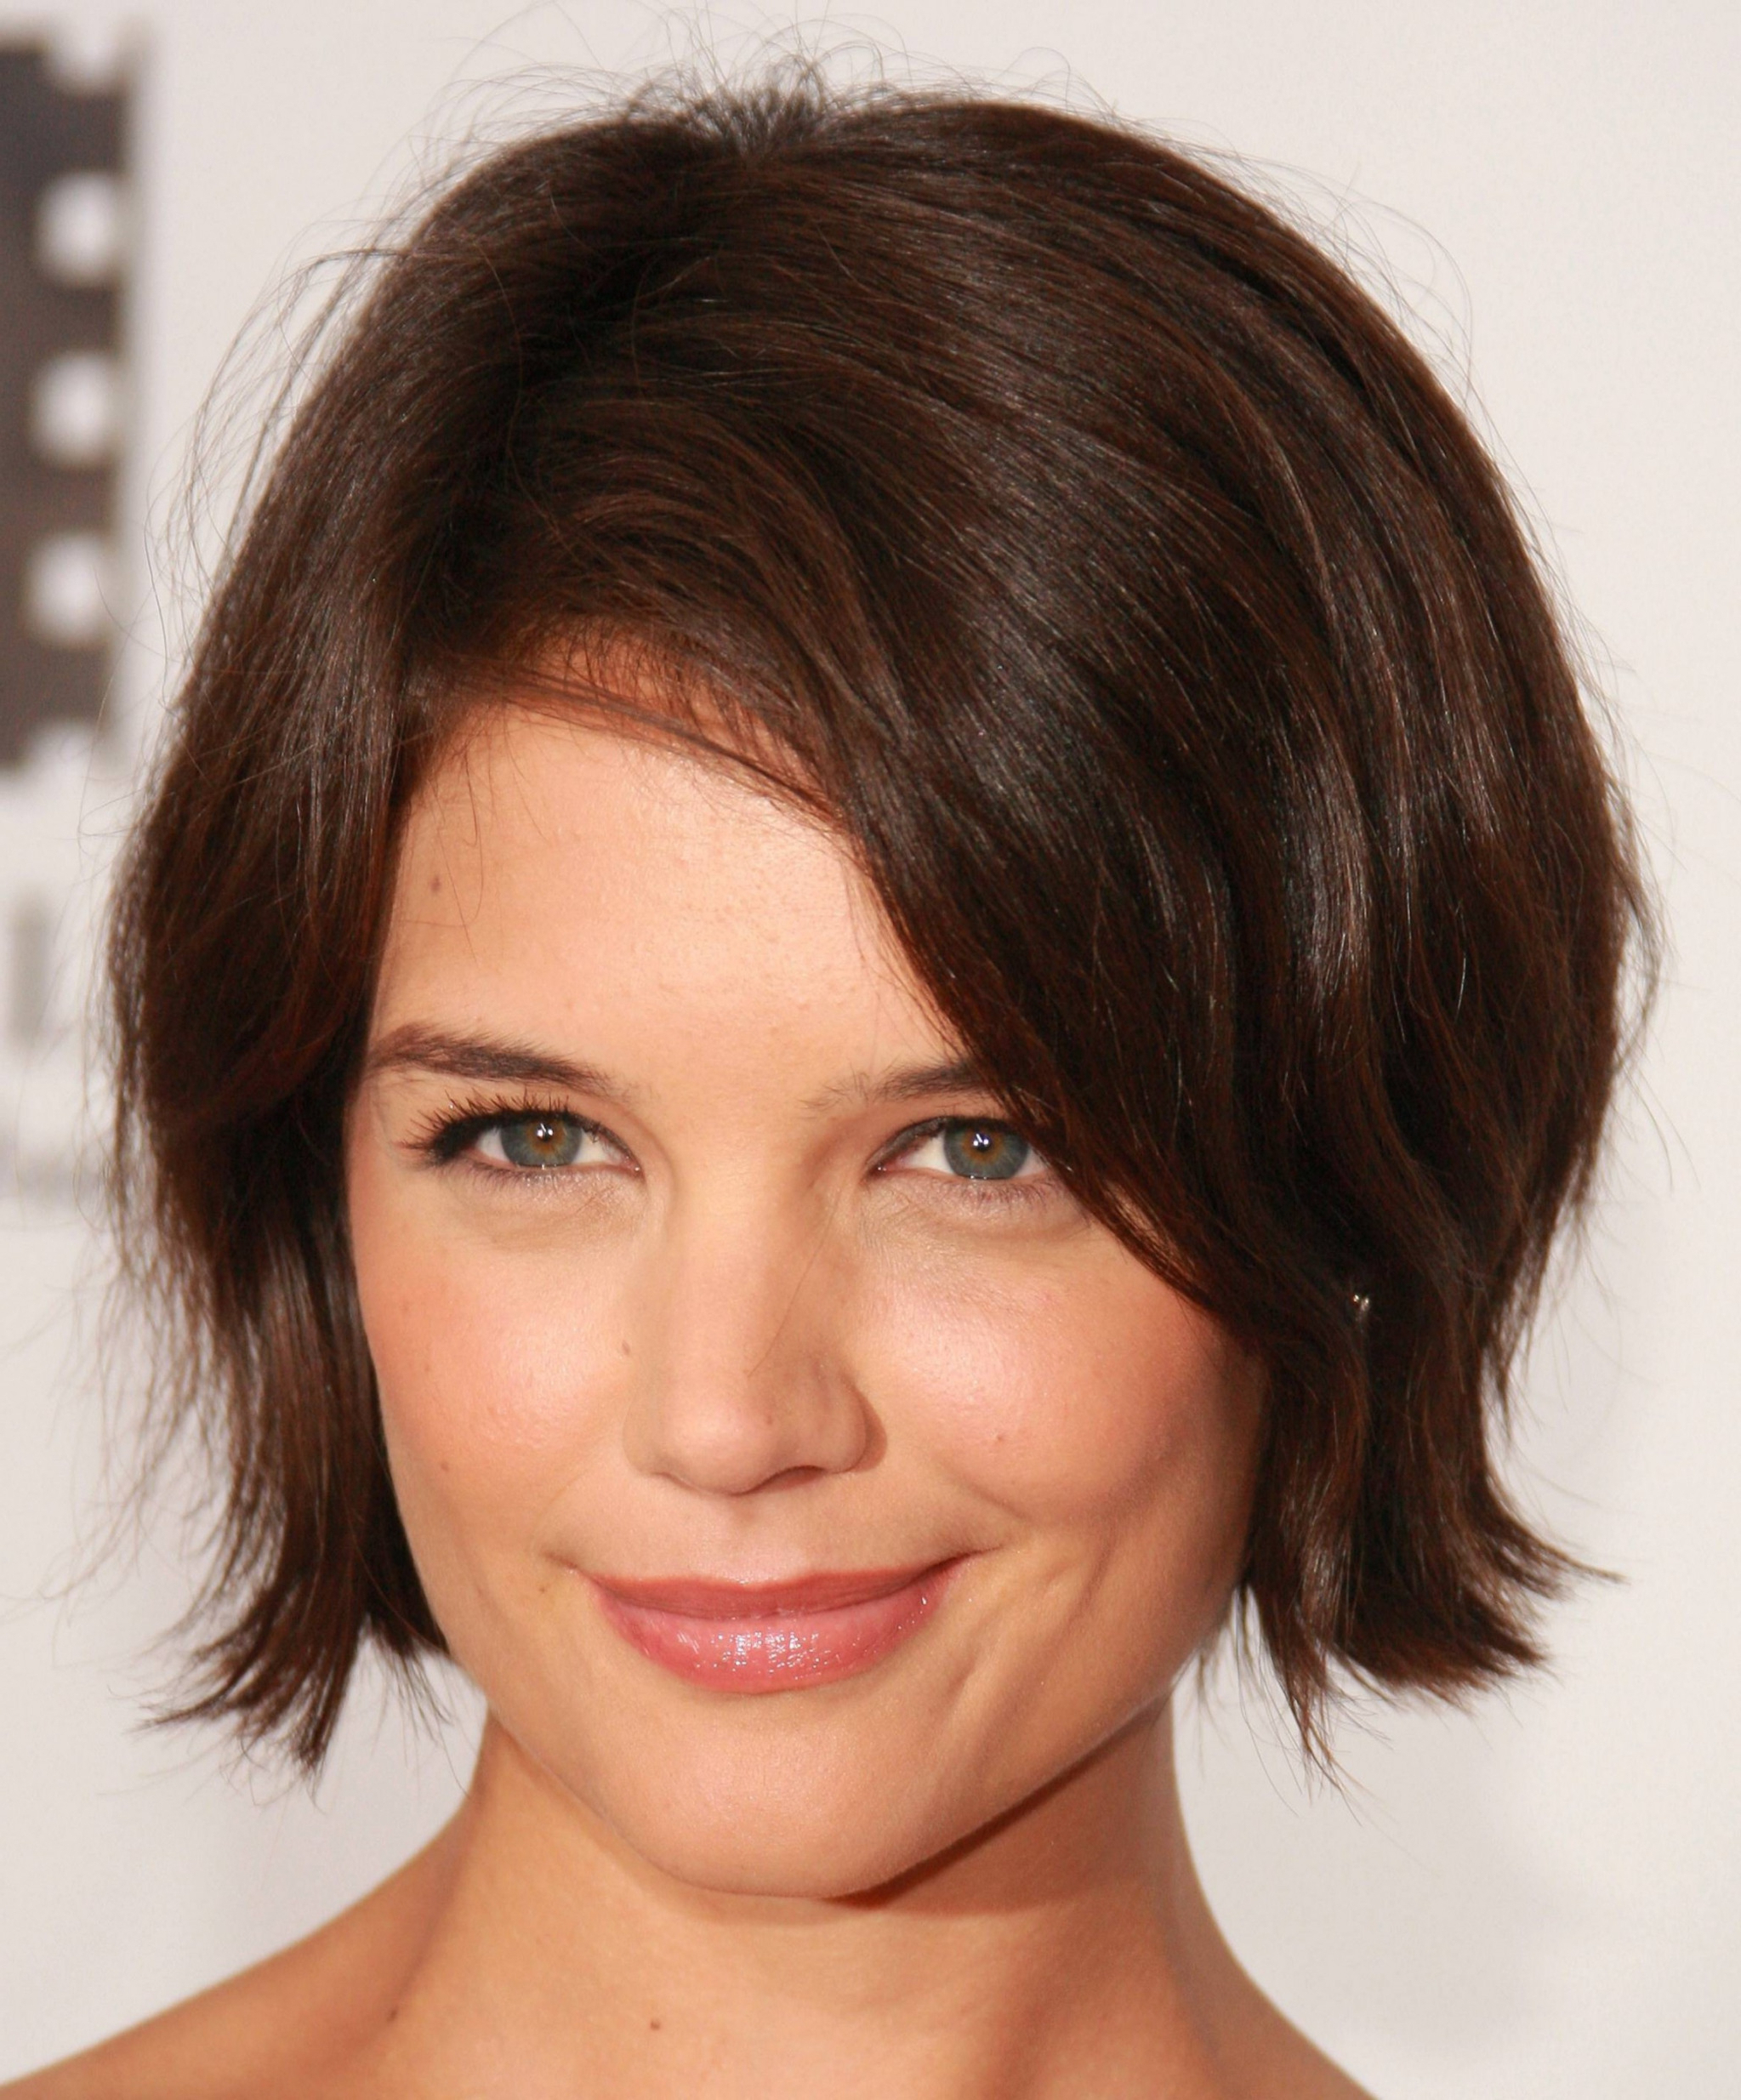 Best Short Hairstyles – Cute Hair Cut Guide For Round Face Shape Pertaining To Short Hairstyles For Chubby Face (View 21 of 25)